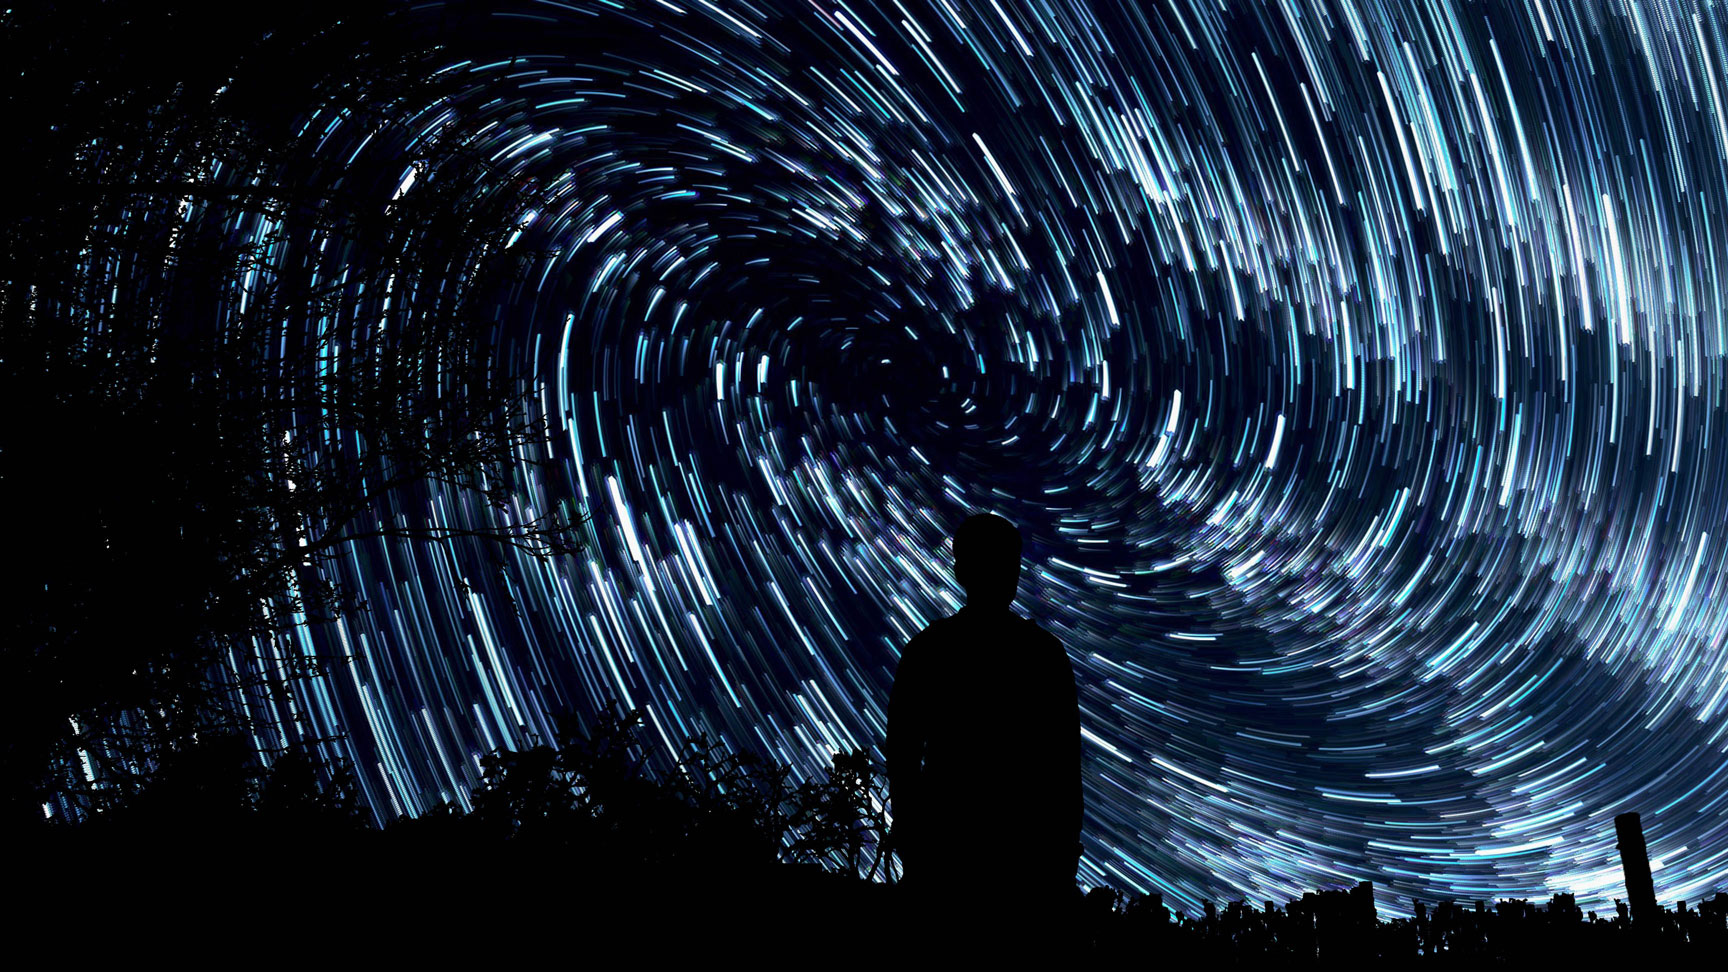 long exposure stars with silhouetted figure